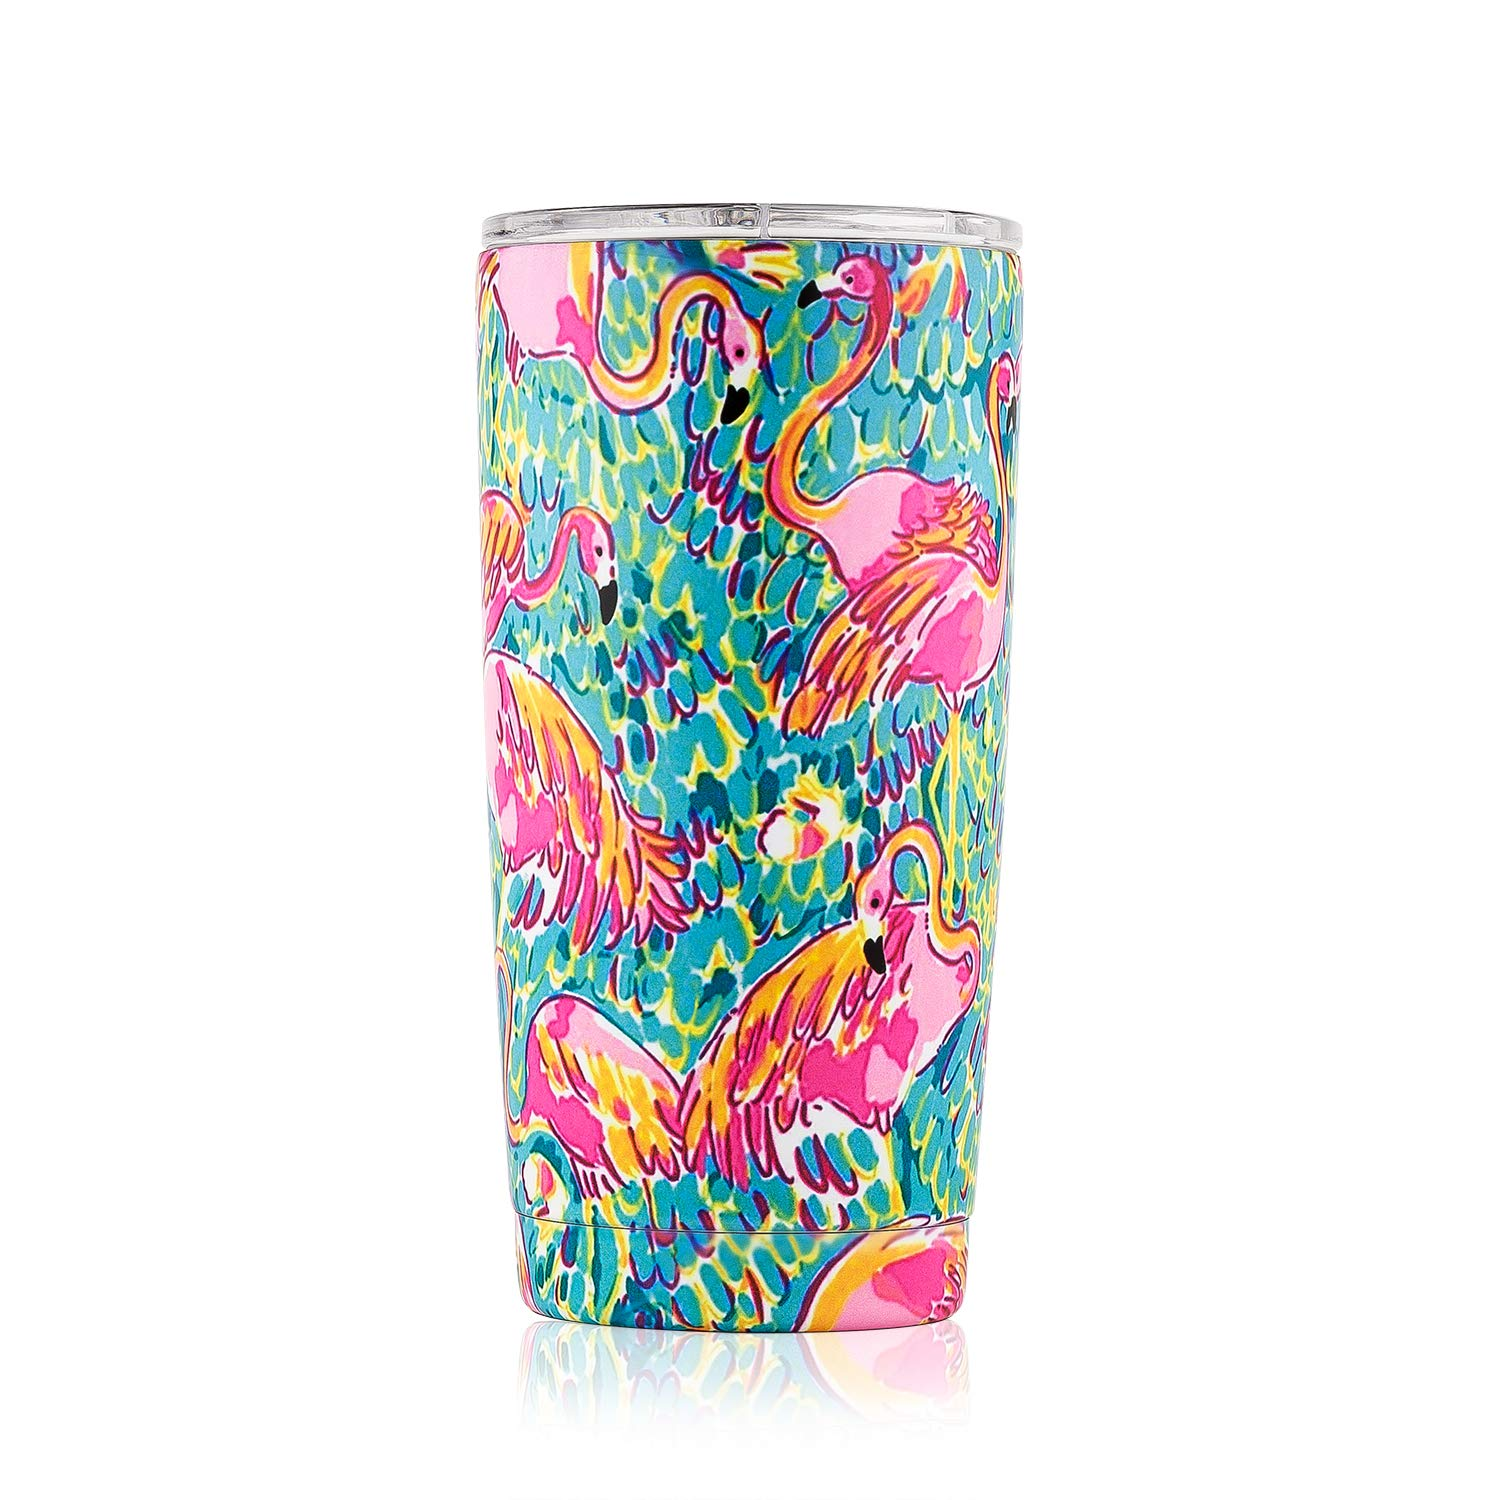 DOKIO 20 oz Flamingo Painting Double Wall Vacuum Insulated Tumbler with Lid Sippy Cup For Adults Wine Glass Travel Cup Stemless Stainless Steel For Ice Drink & Hot Drink Coffee Outdoor Camping